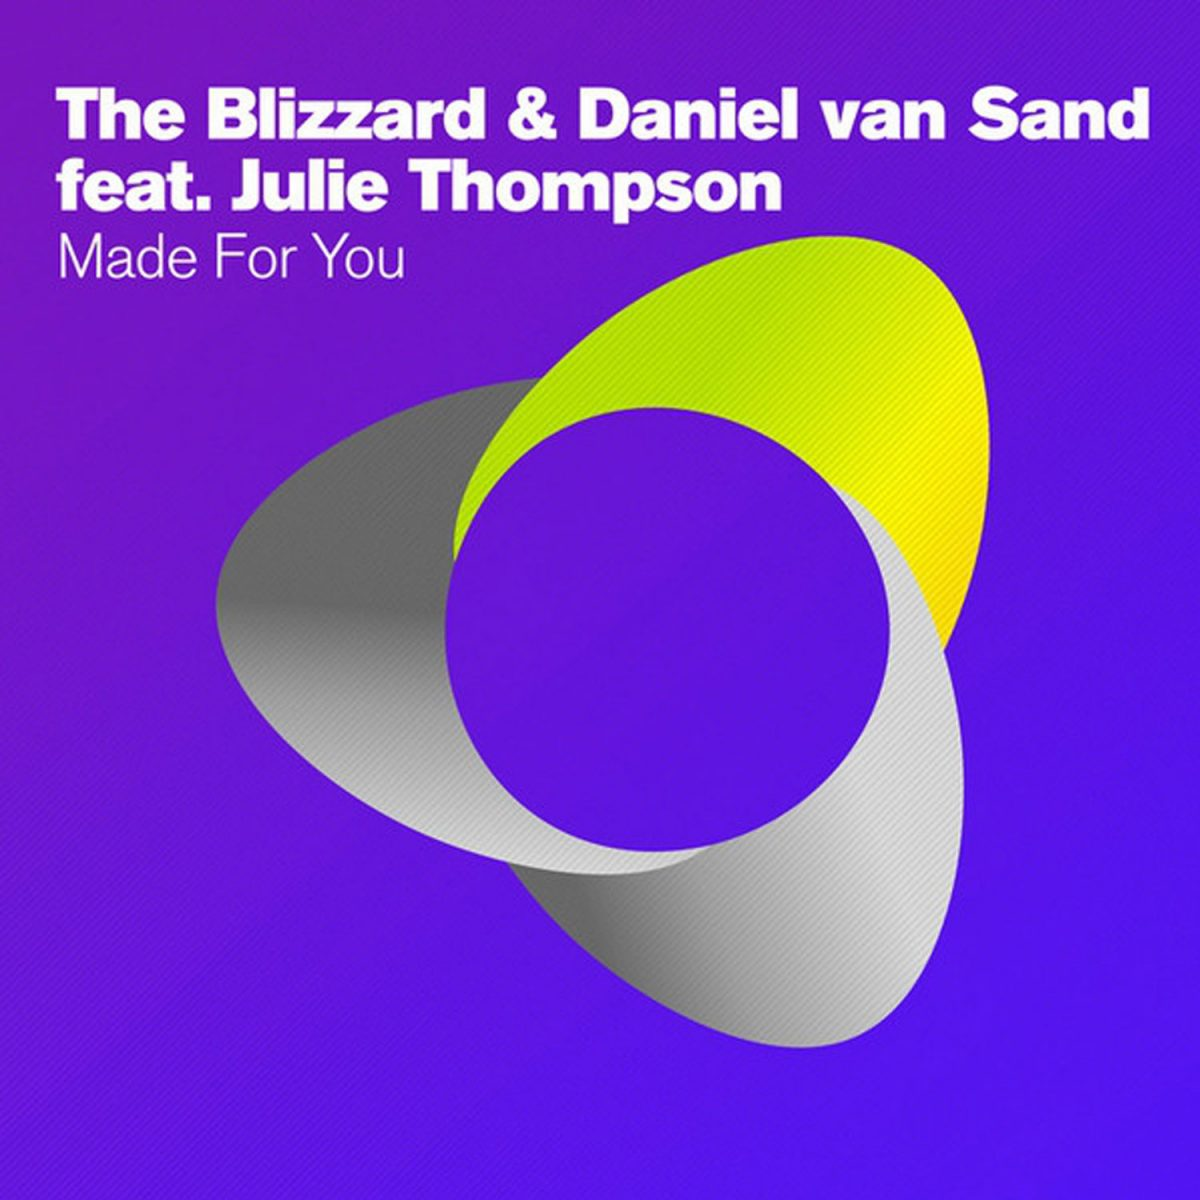 The Blizzard & Daniel van Sand feat. Julie Thompson - Made For You on Armada Music